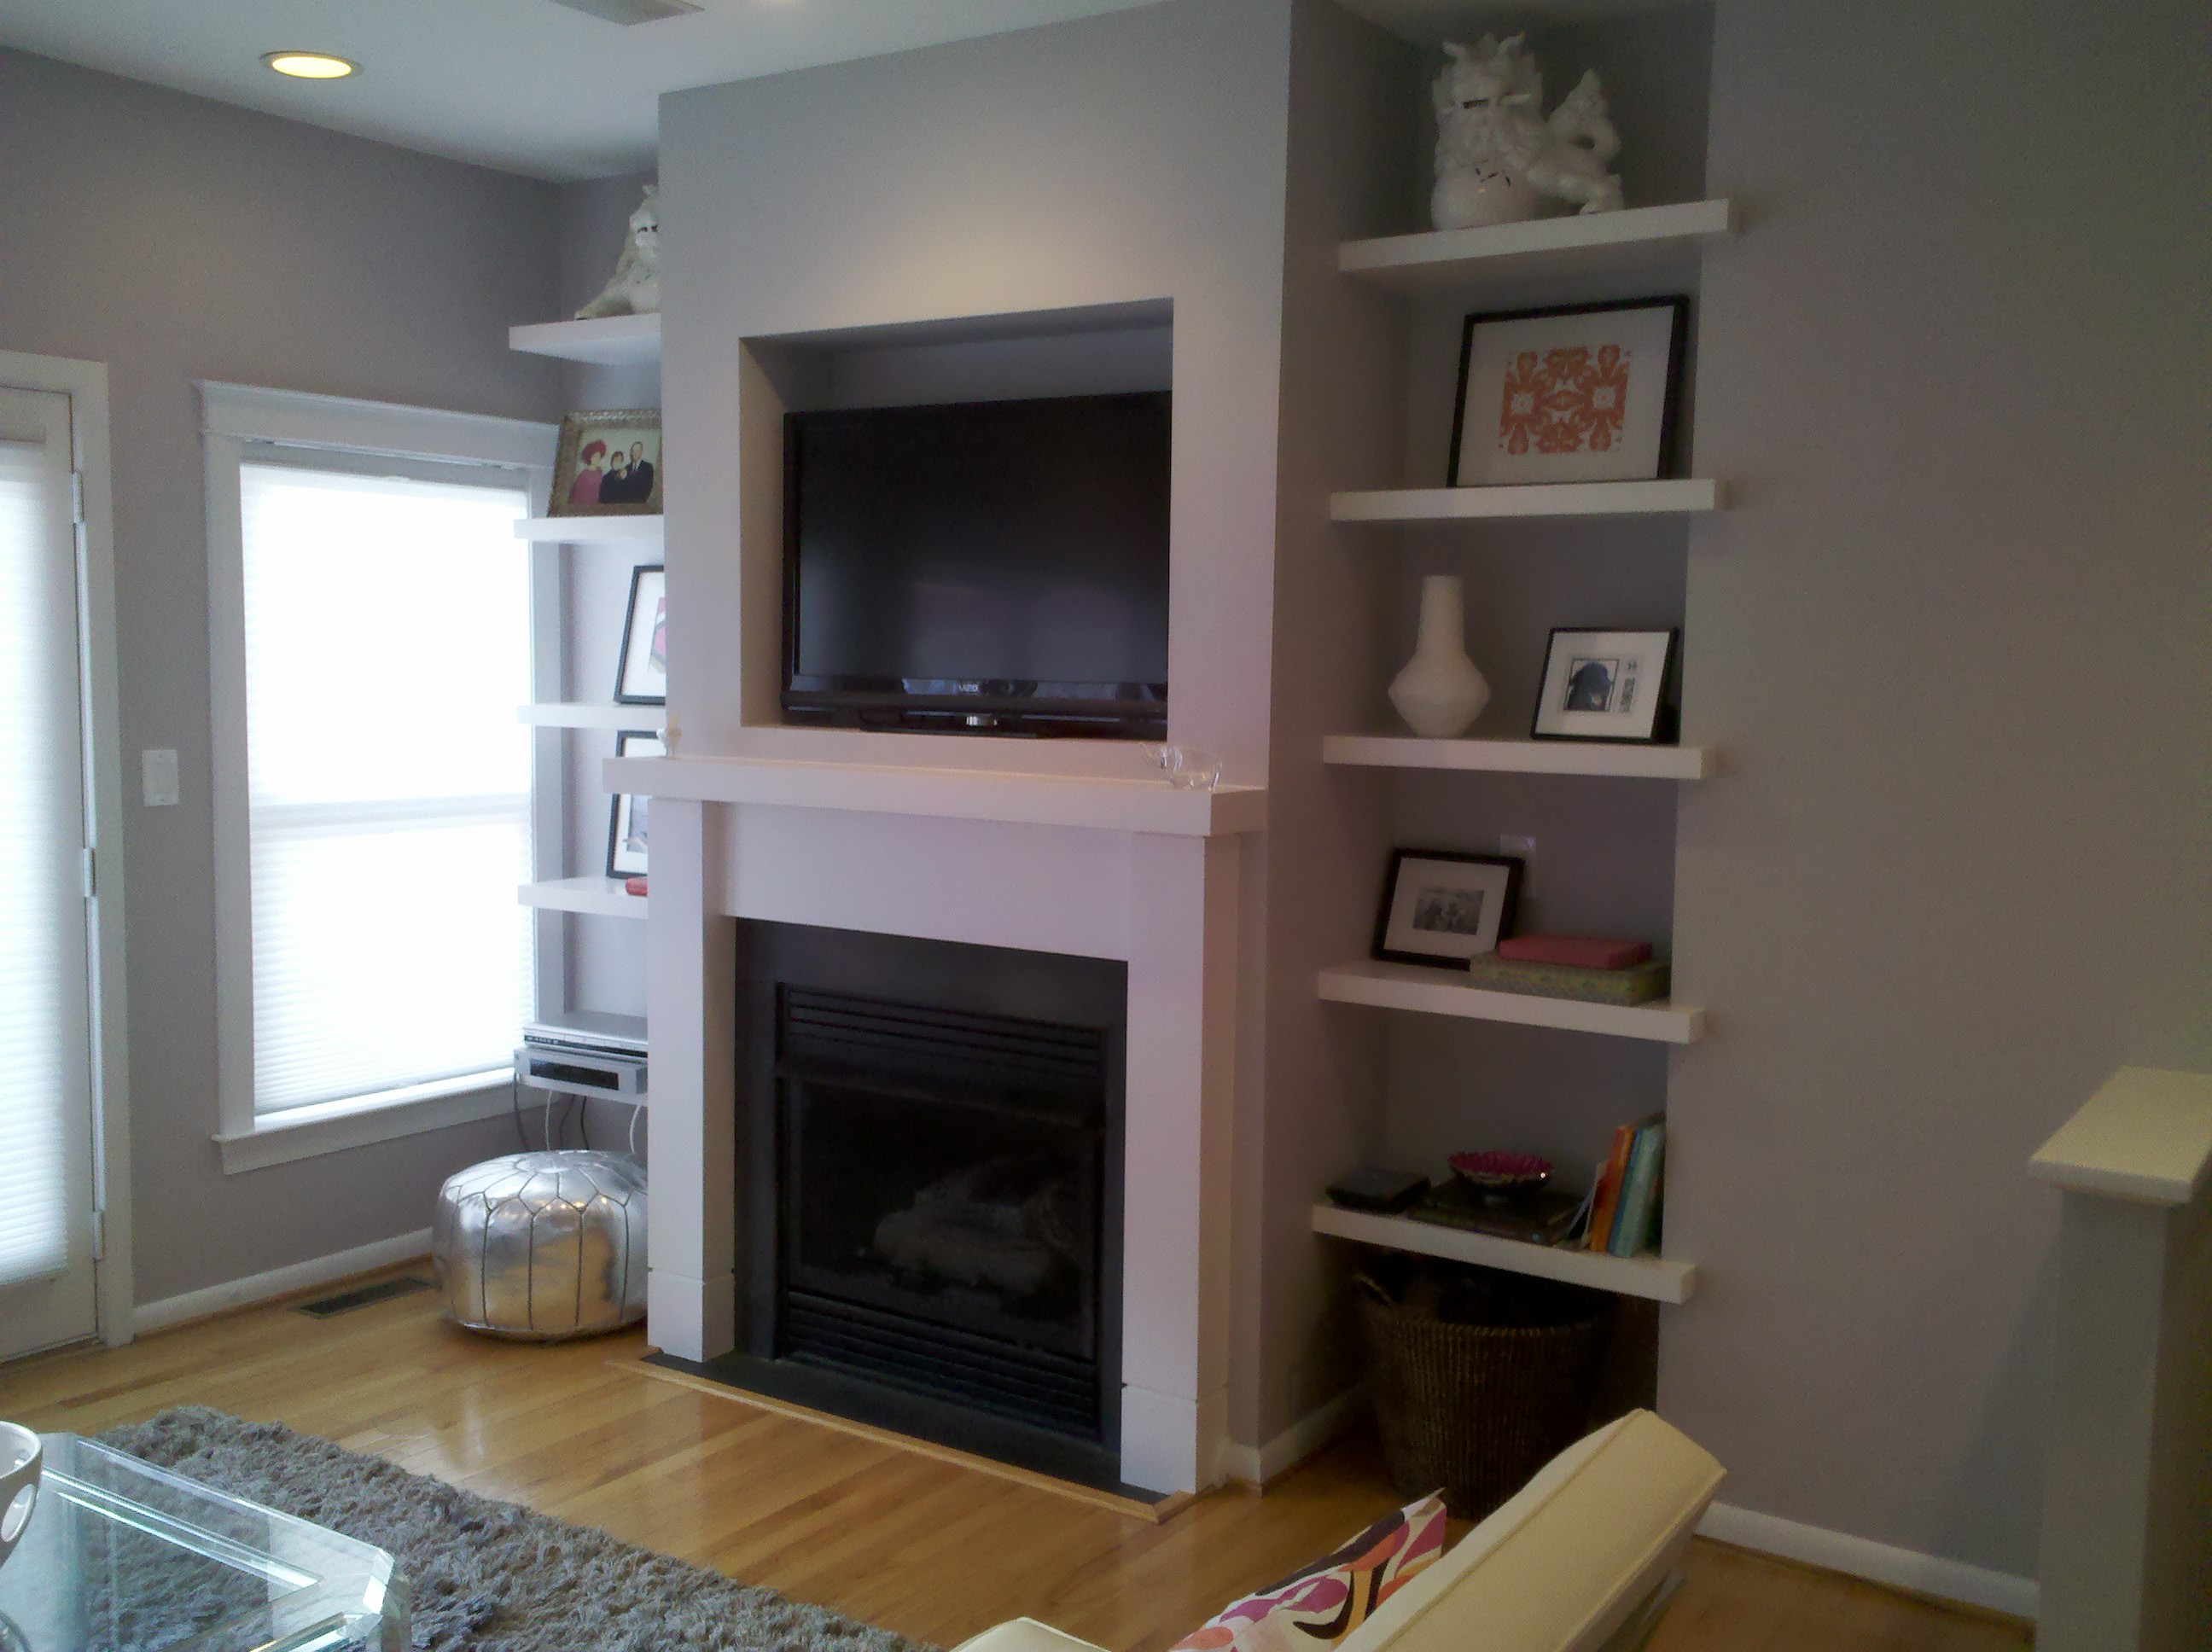 gallery floating natural existing home remodel installed maple wa reinstalledsmaller kirkland spencer repaired custom insulated cut mantel project rough removed mantle and fireplace cavity solutions